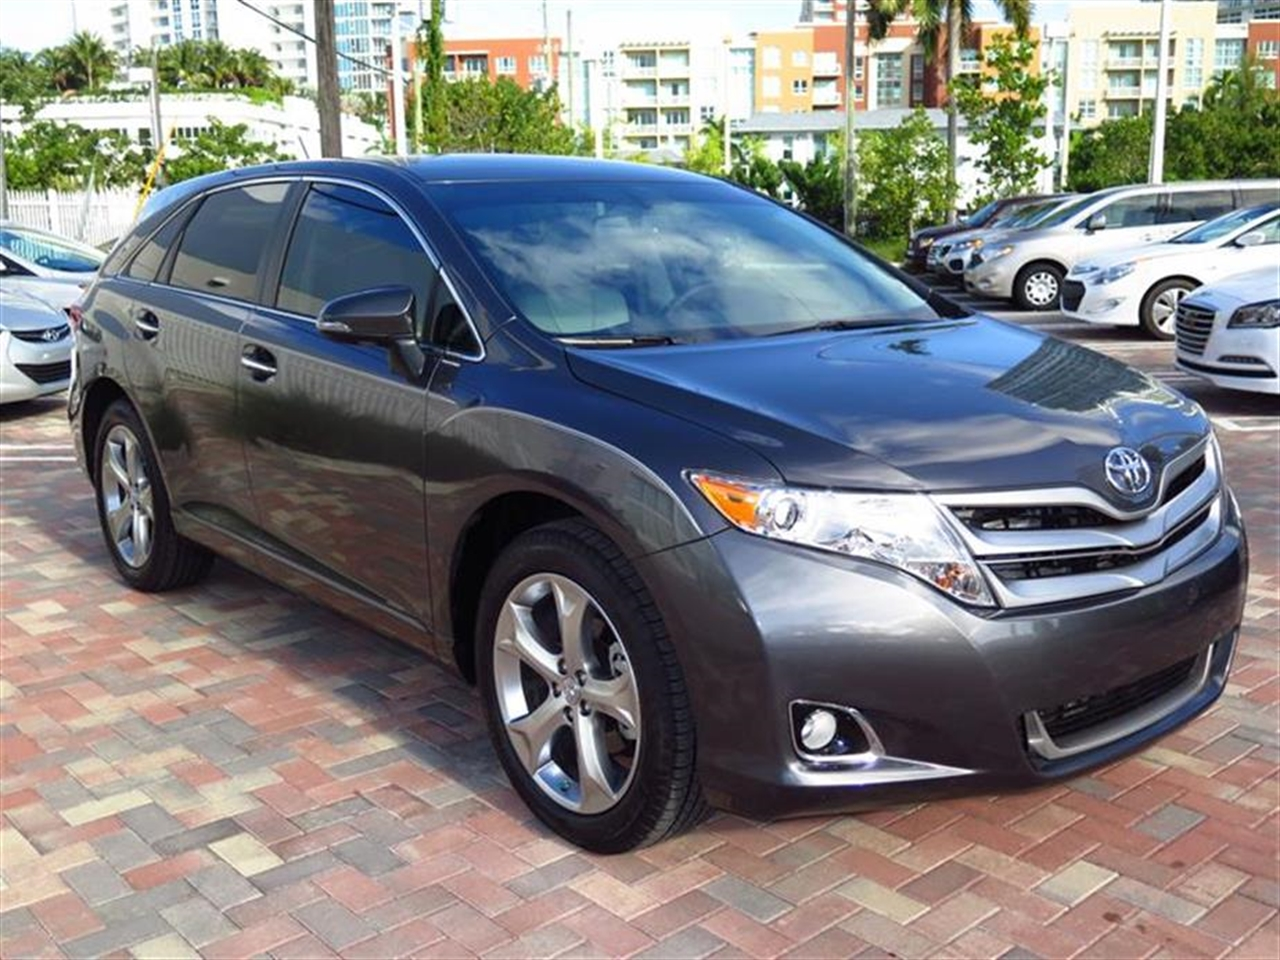 2015 TOYOTA VENZA 4dr Wgn V6 FWD XLE 2942 miles 3 12V DC Power Outlets 5 Person Seating Capacity